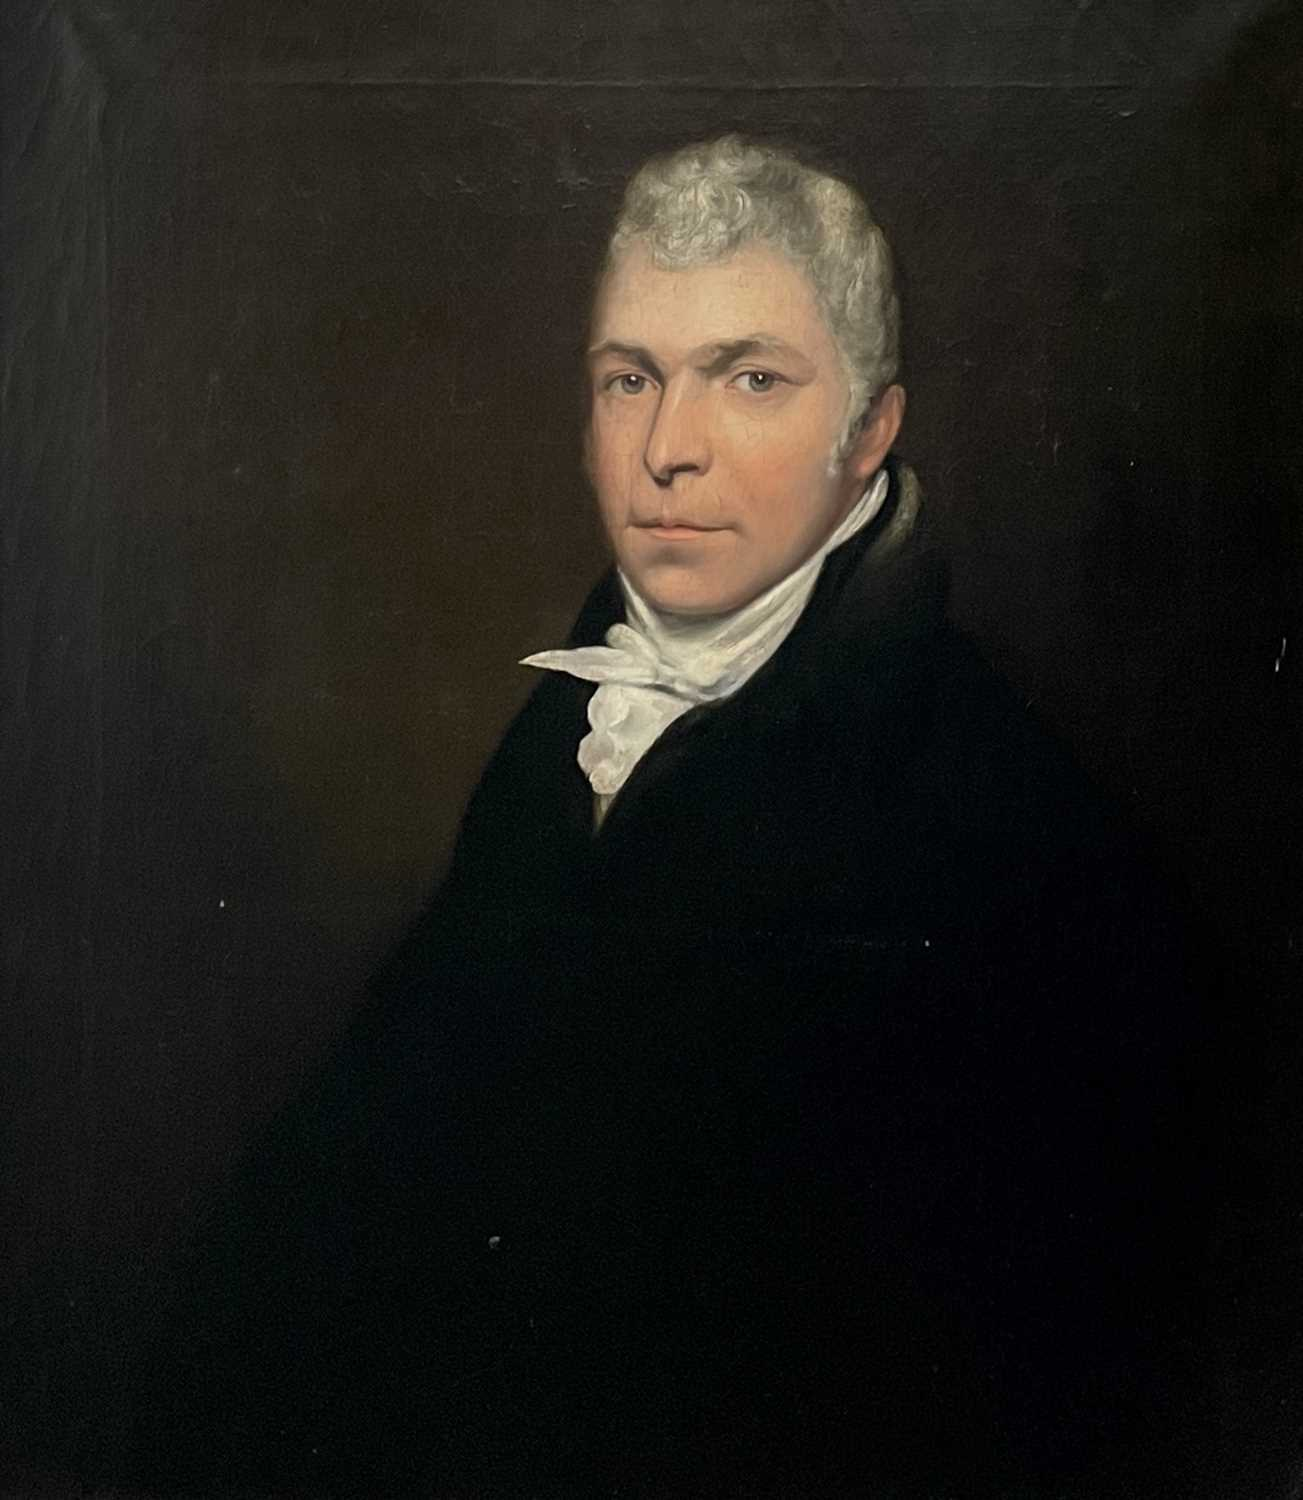 Circle of John OPIE (1761-1807) By repute, a portrait of a member of the Pitcairn family, possibly